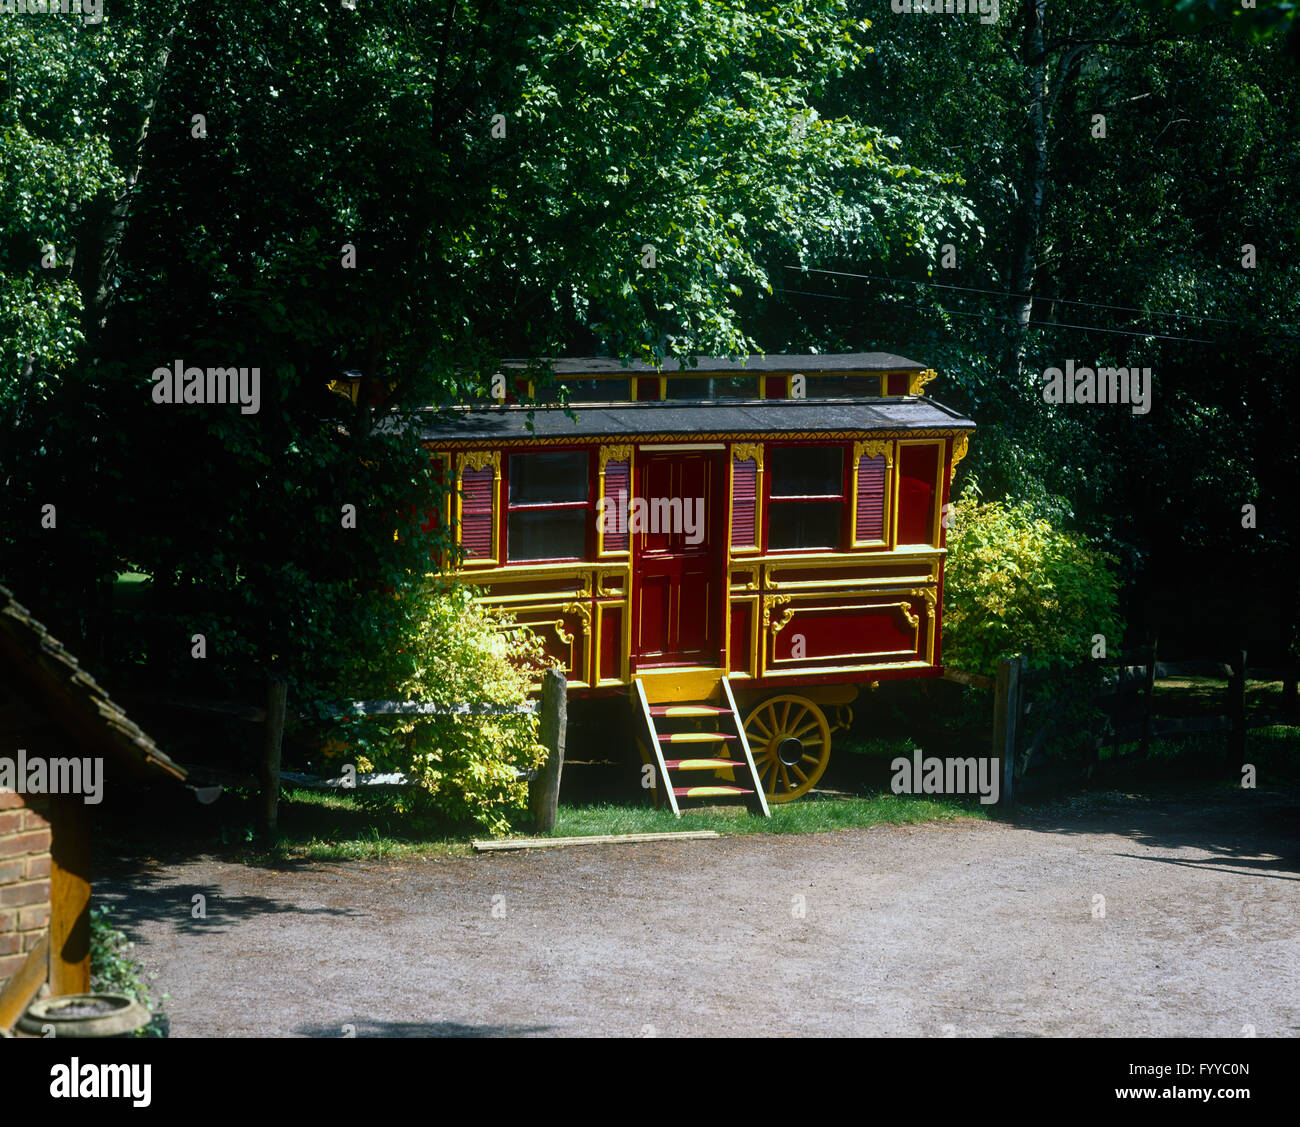 Fortune teller caravan tucked into the trees and bushes, outside. - Stock Image